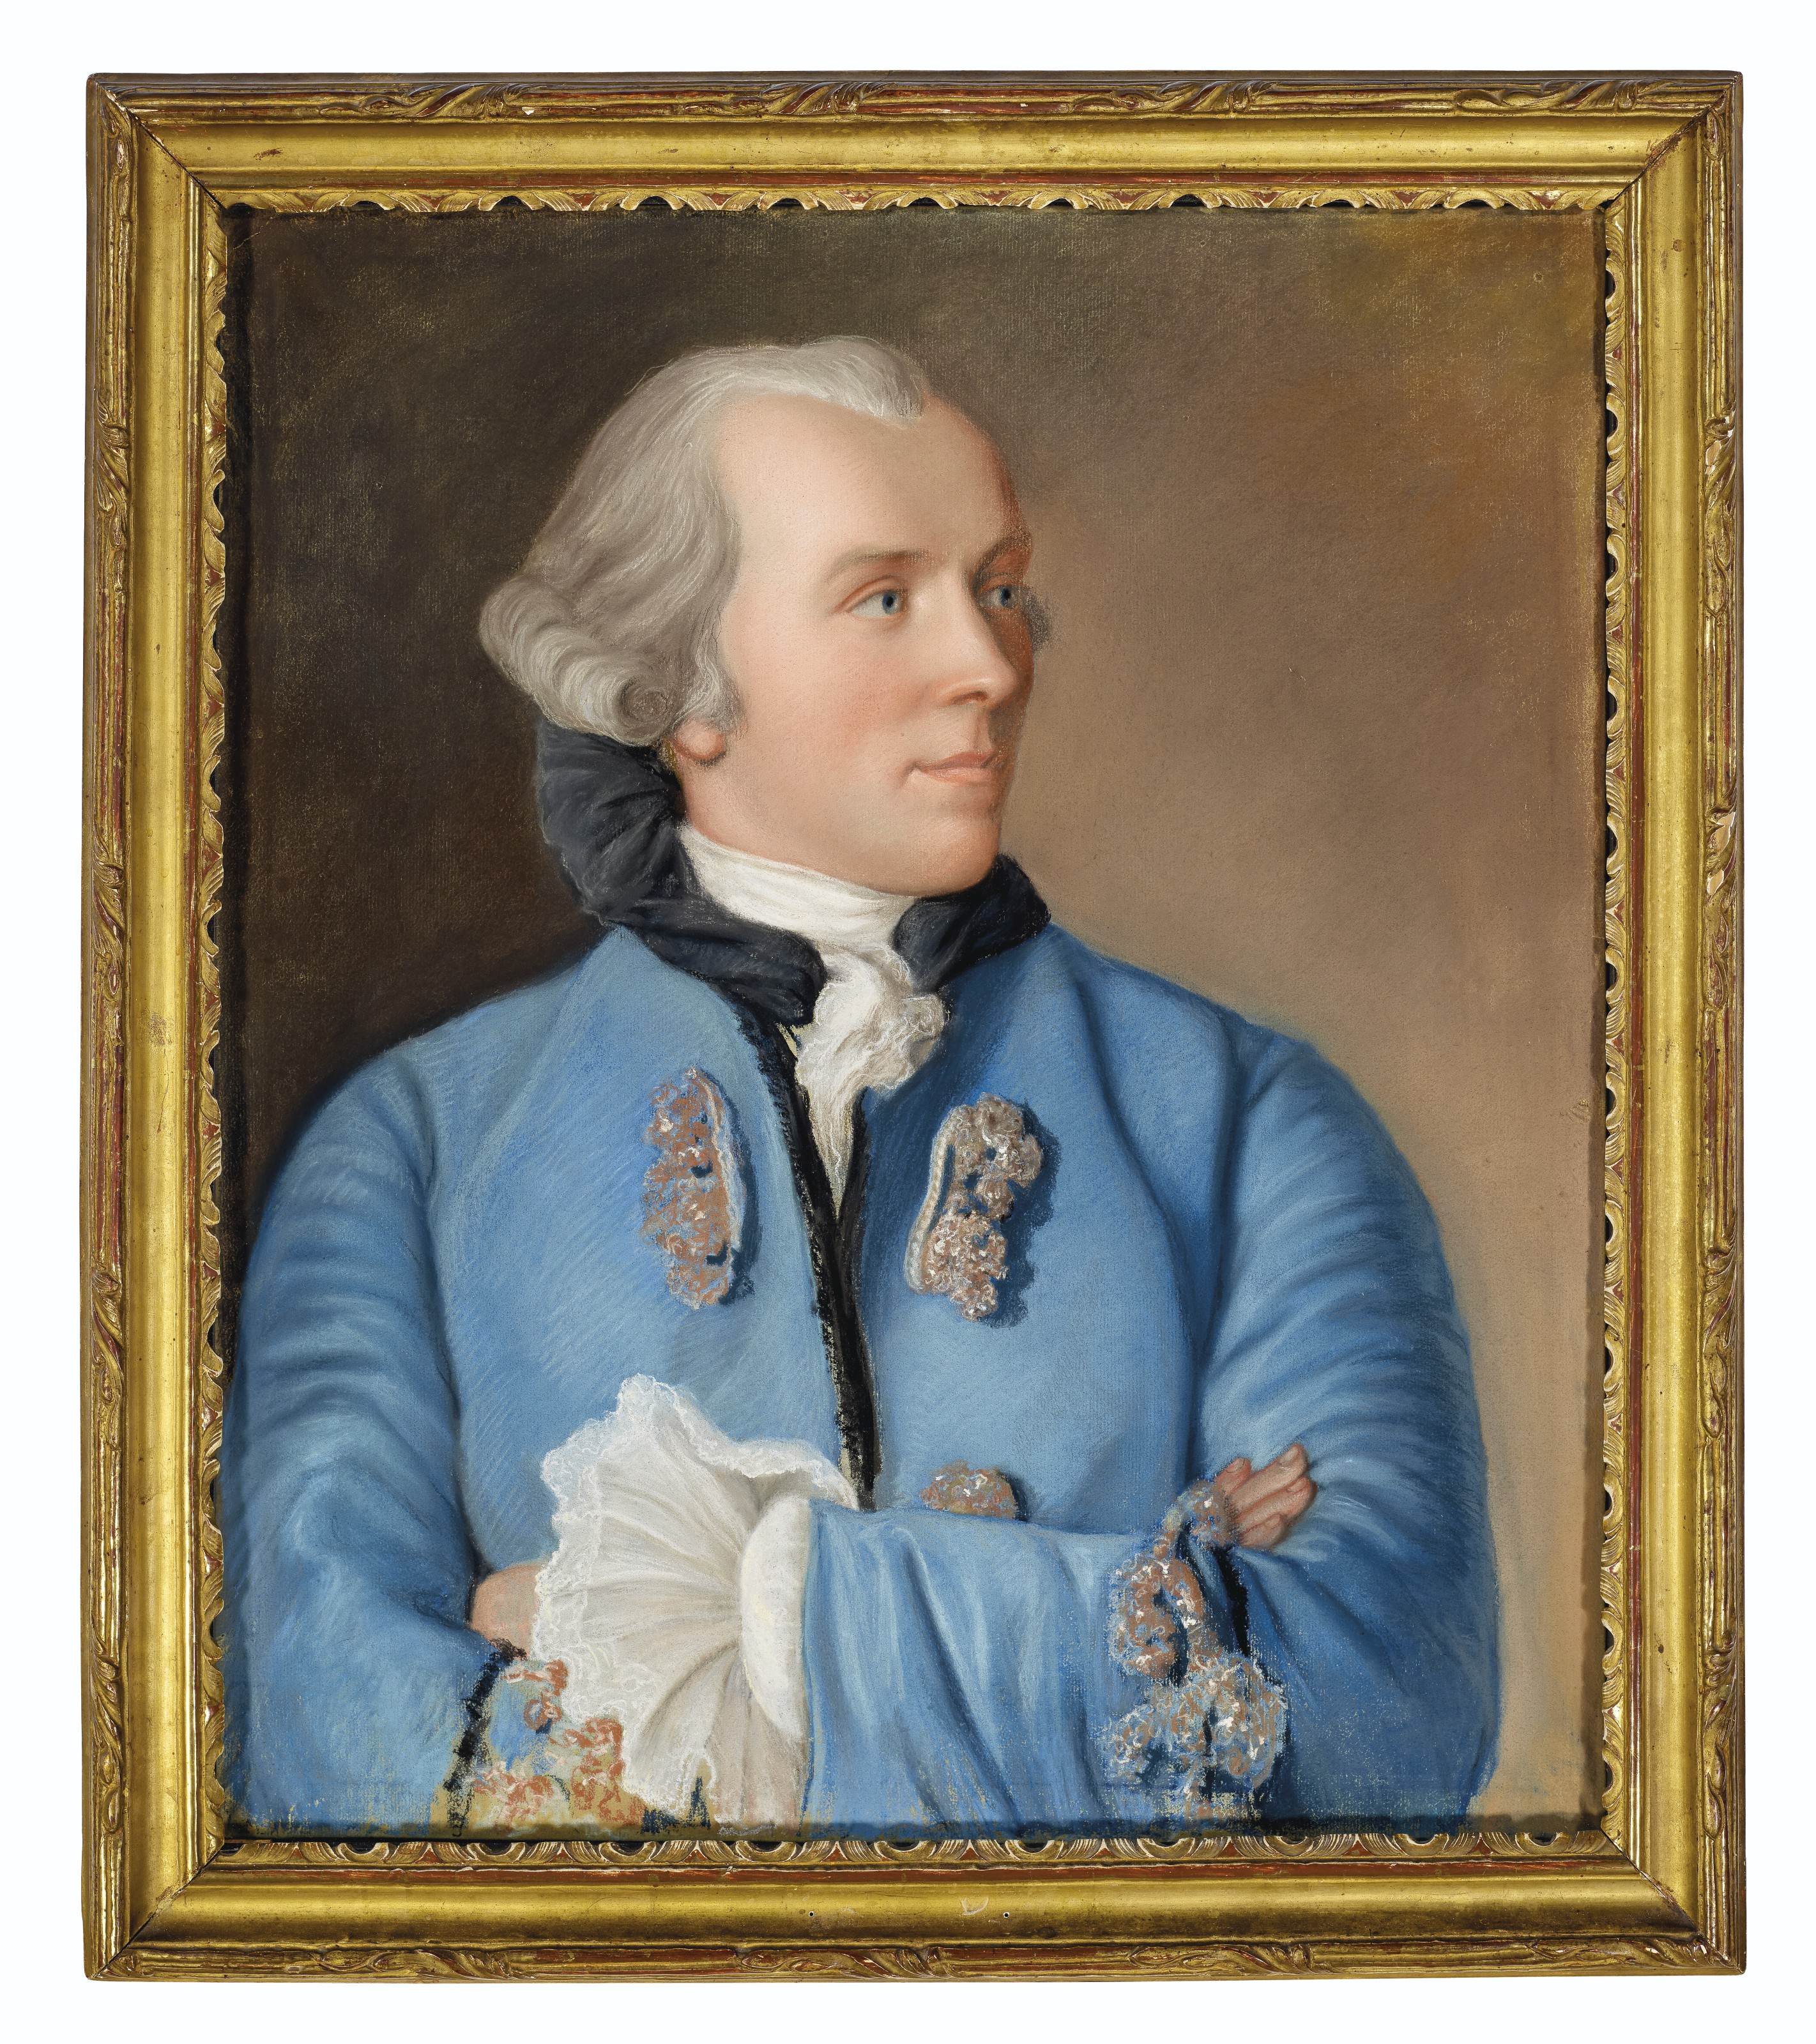 Jean-Etienne Liotard (1702-89), Portrait of Philibert Cramer, circa 1758. Pastel on blue paper, mounted on canvas. 25 x 21¼ in (63.5 x 53.8 cm). Offered in Old Master & British Drawings including property from The Cornelia Bessie Estate,14-28 January 2021, Online